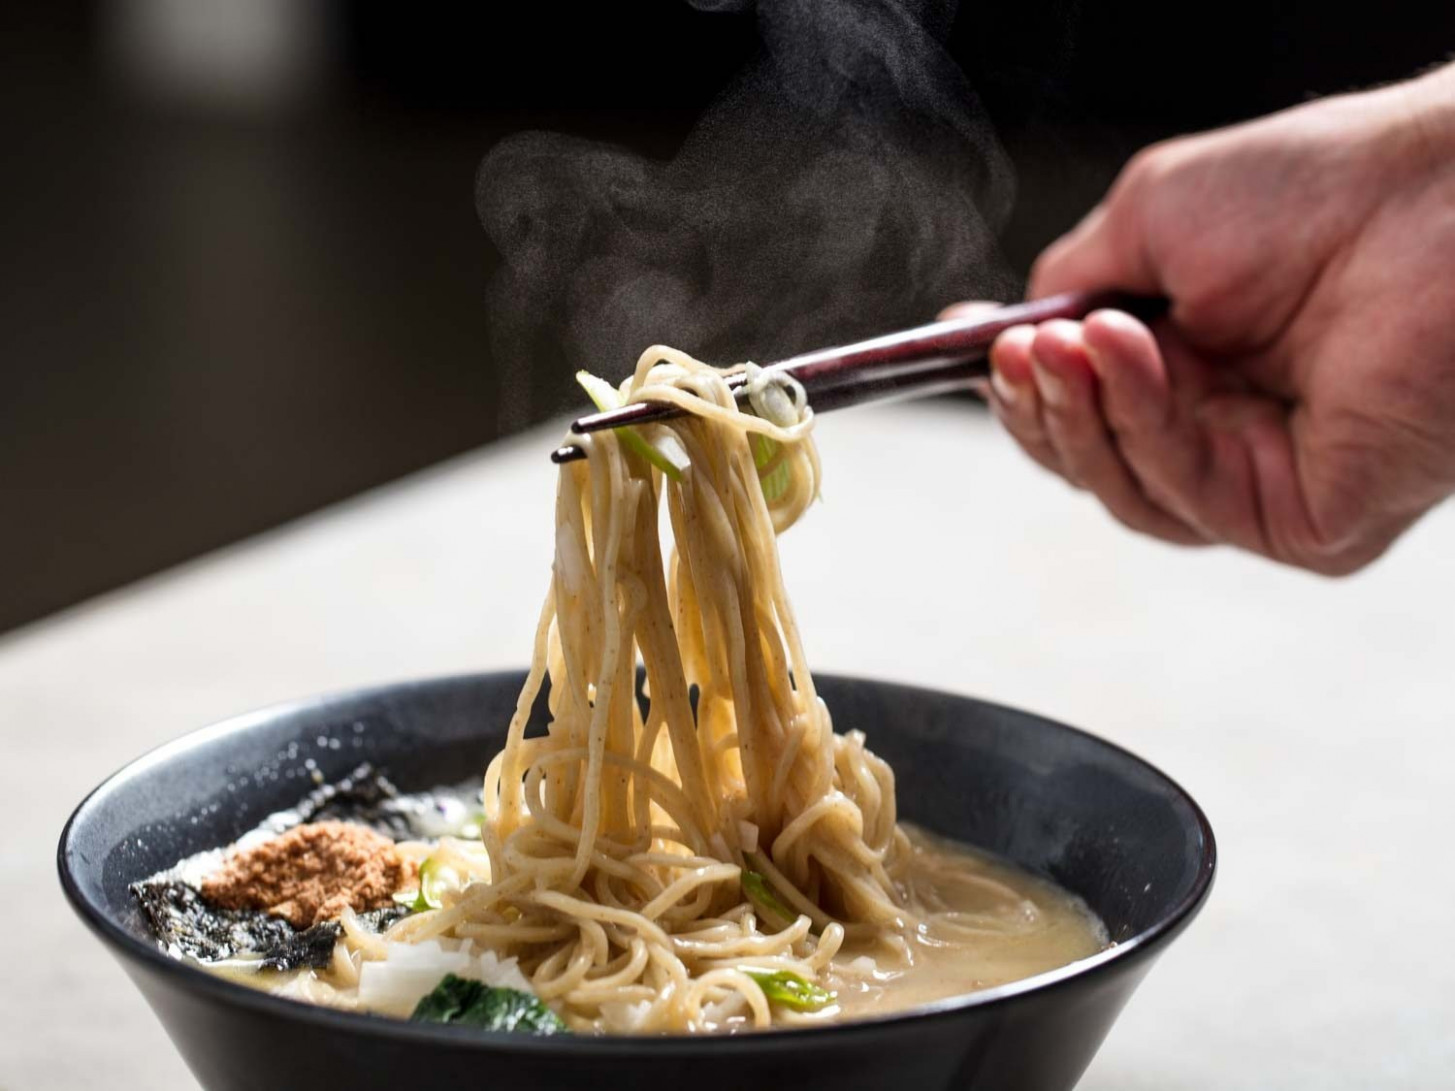 How To Make Ramen Noodles From Scratch Serious Eats Healthy ..